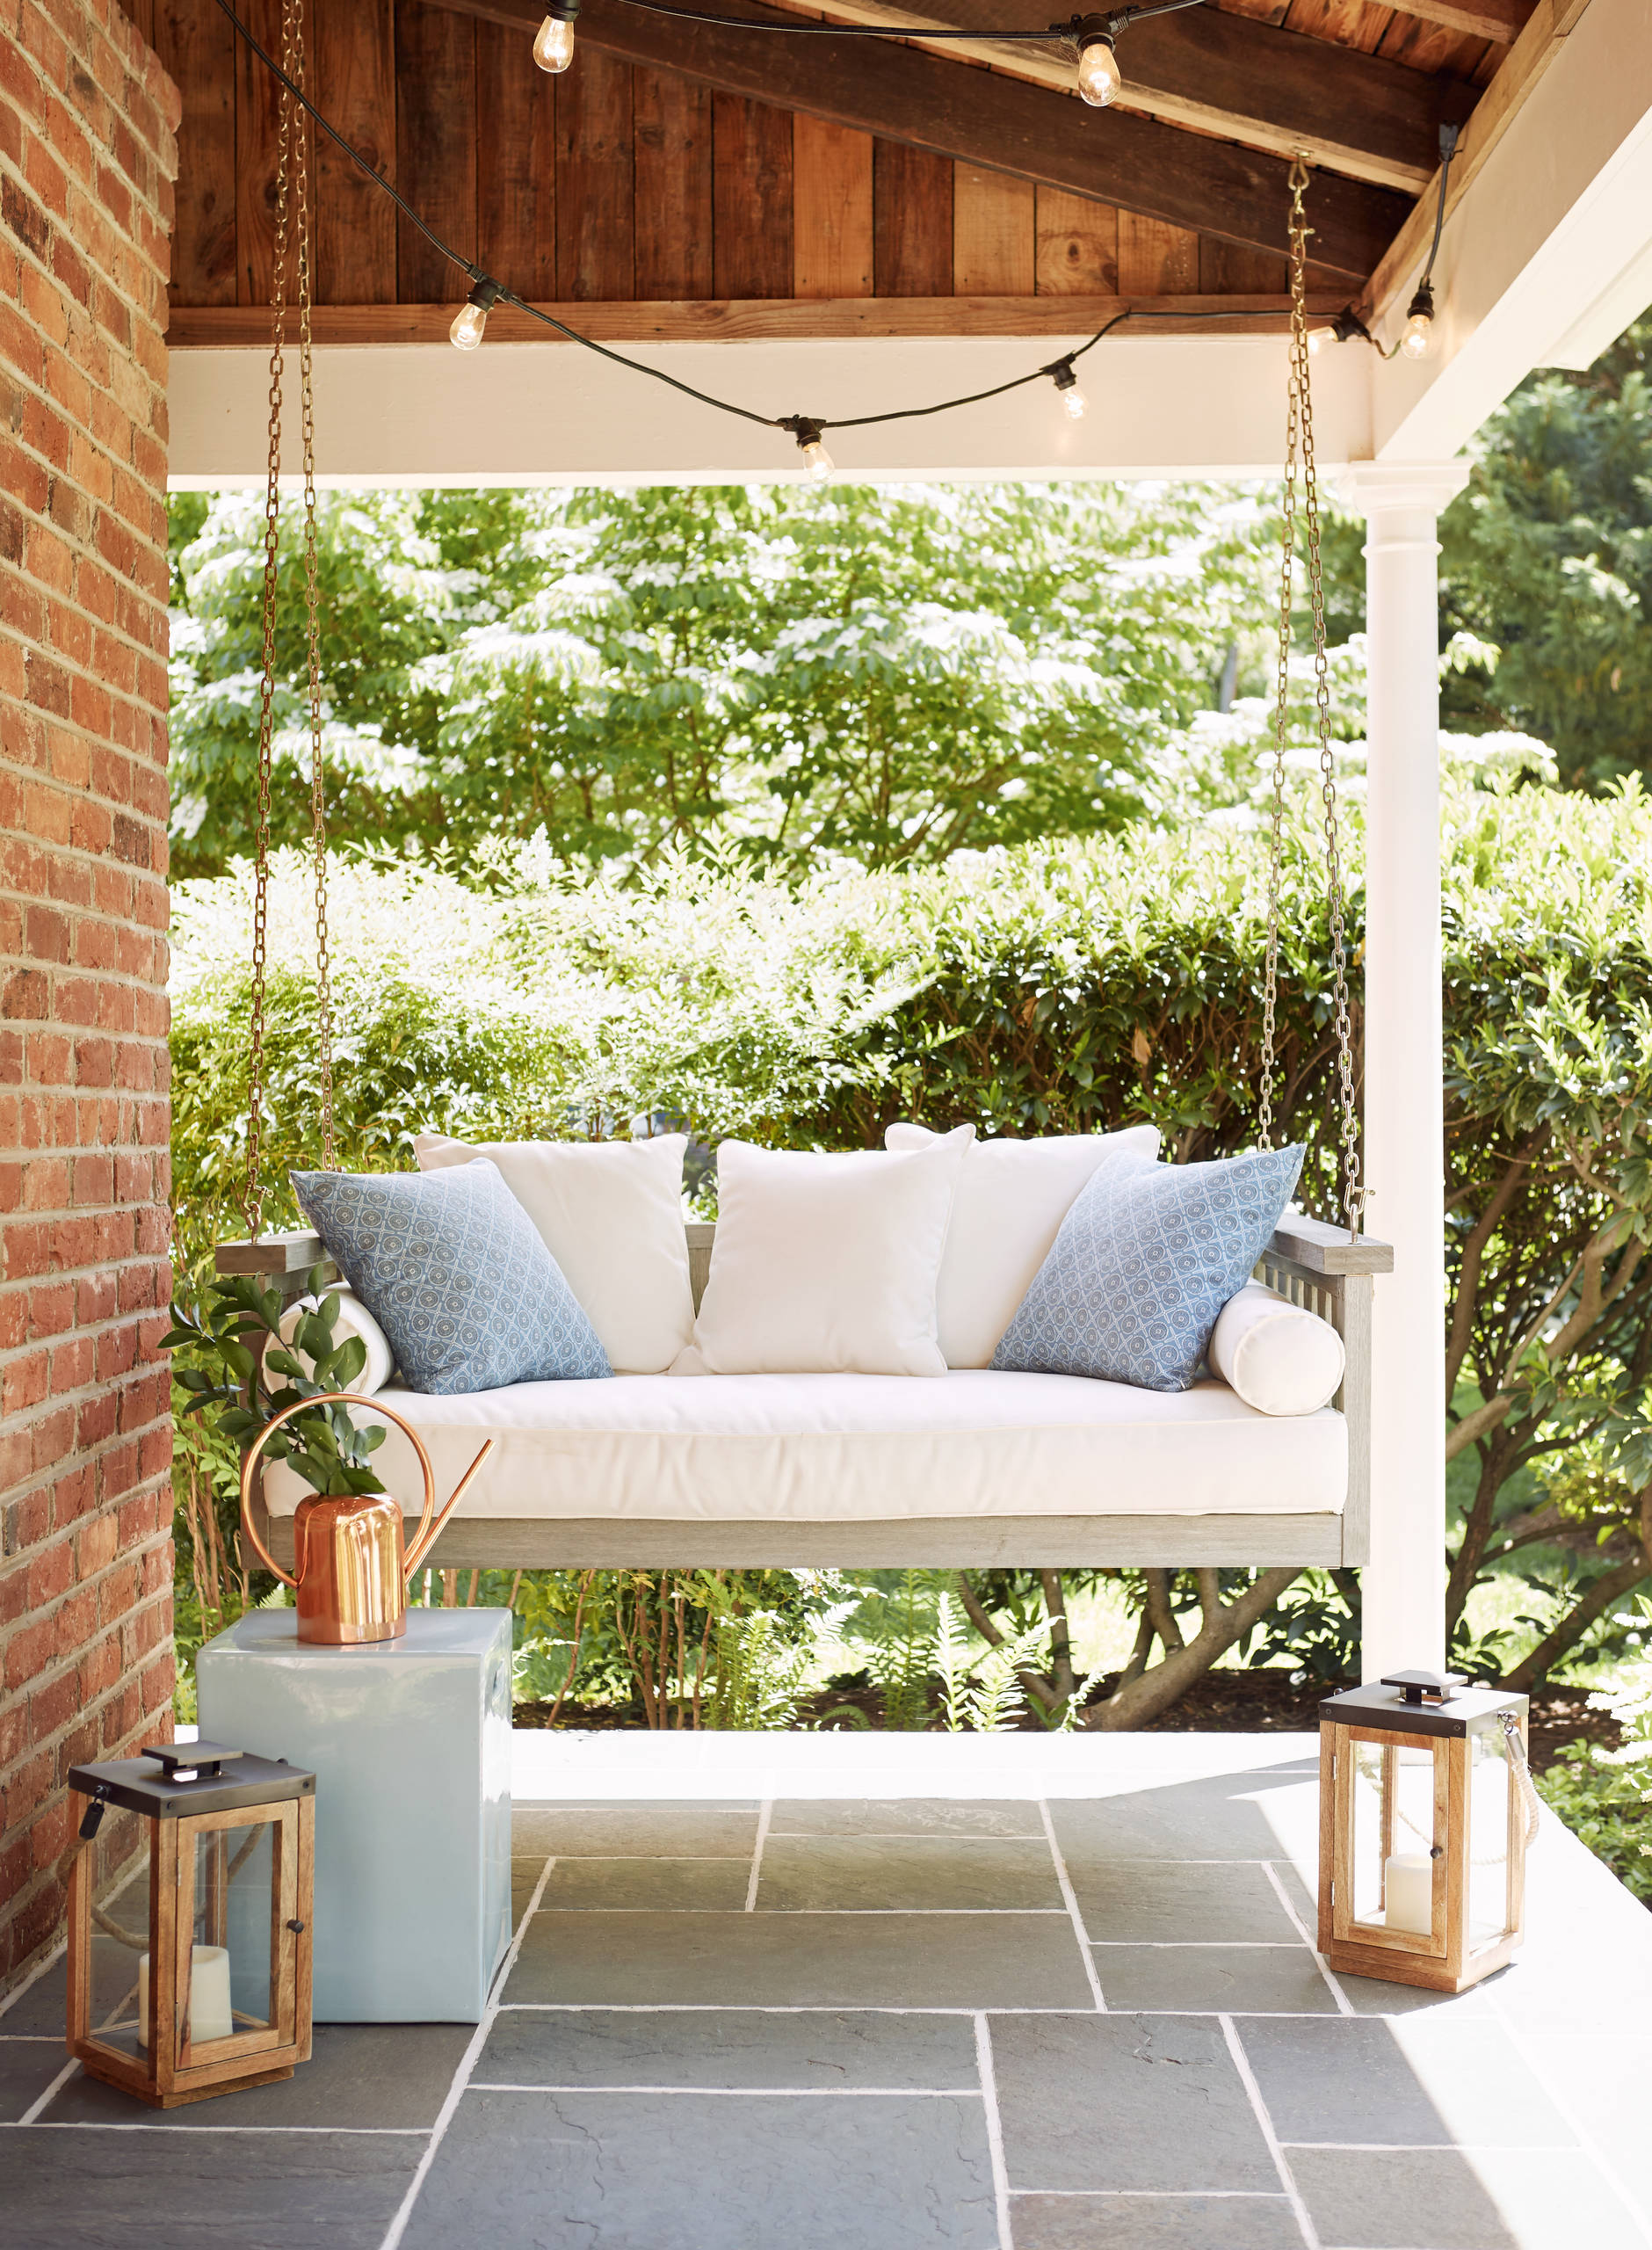 75 Beautiful Patio Pictures Ideas December 2020 Houzz